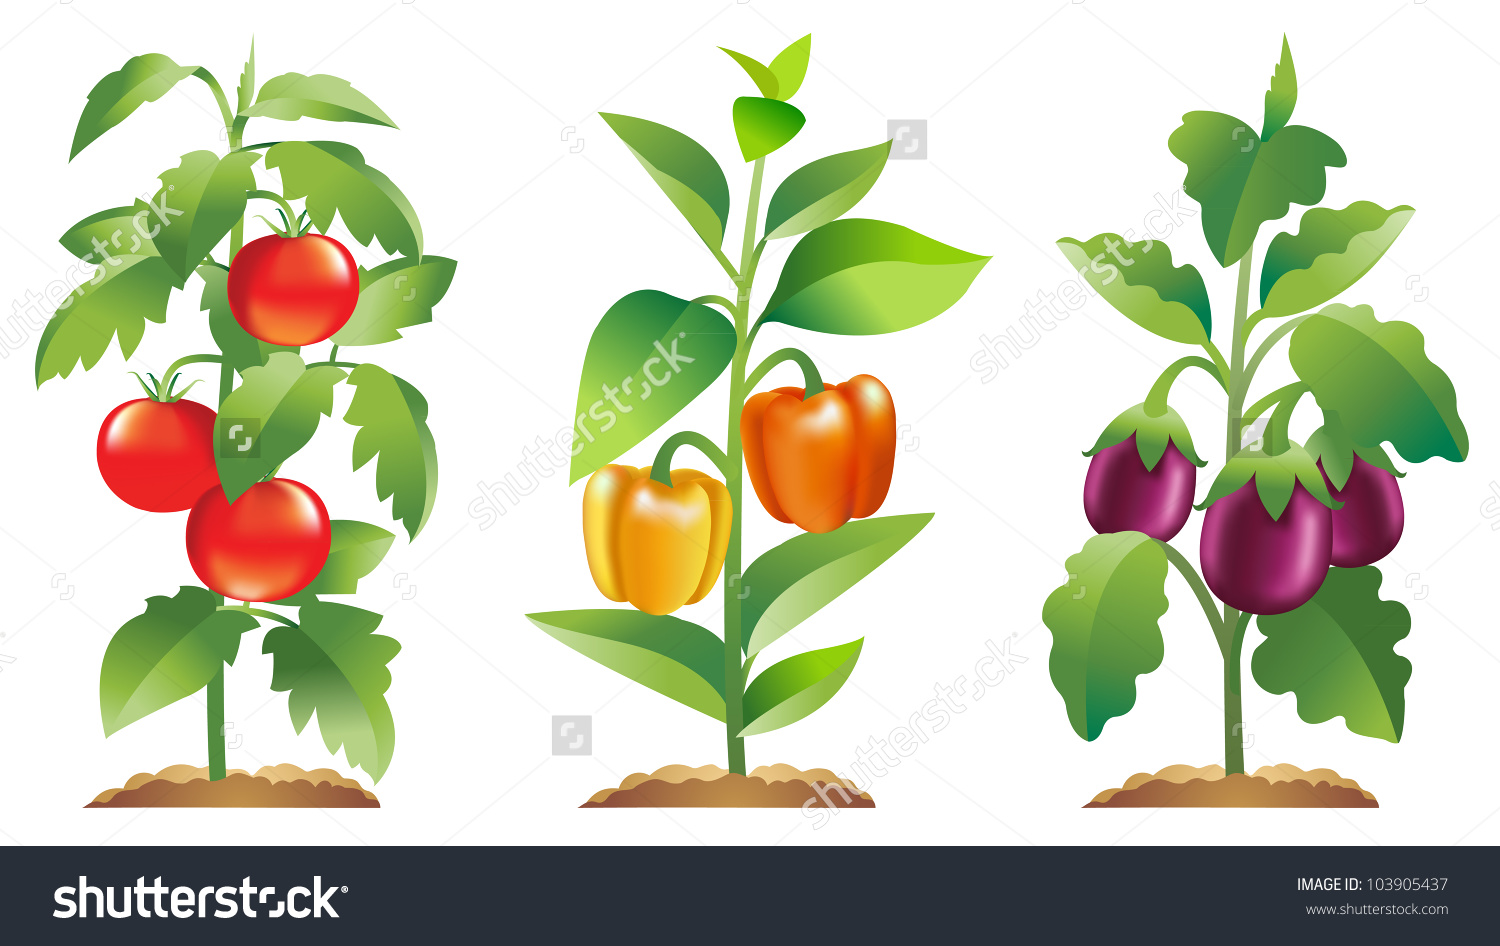 Tomato Plant Bell Pepper Plant Eggplant Stock Vector 103905437.